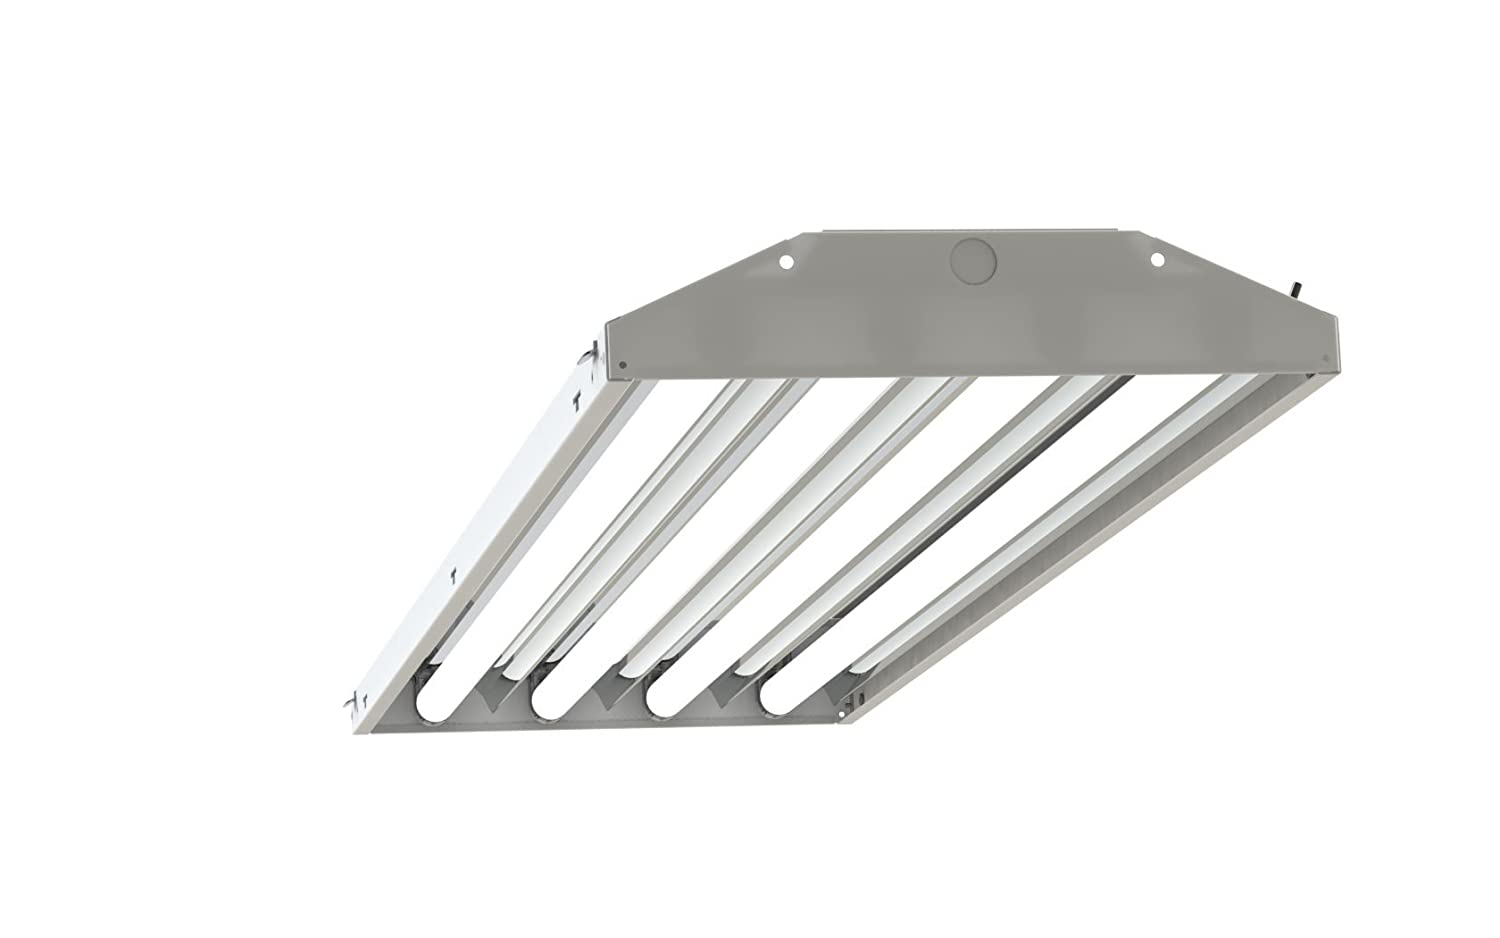 Lamp T HO High Bay Fluorescent Lighting Fixture High Output THO - 4 bulb kitchen light fixture